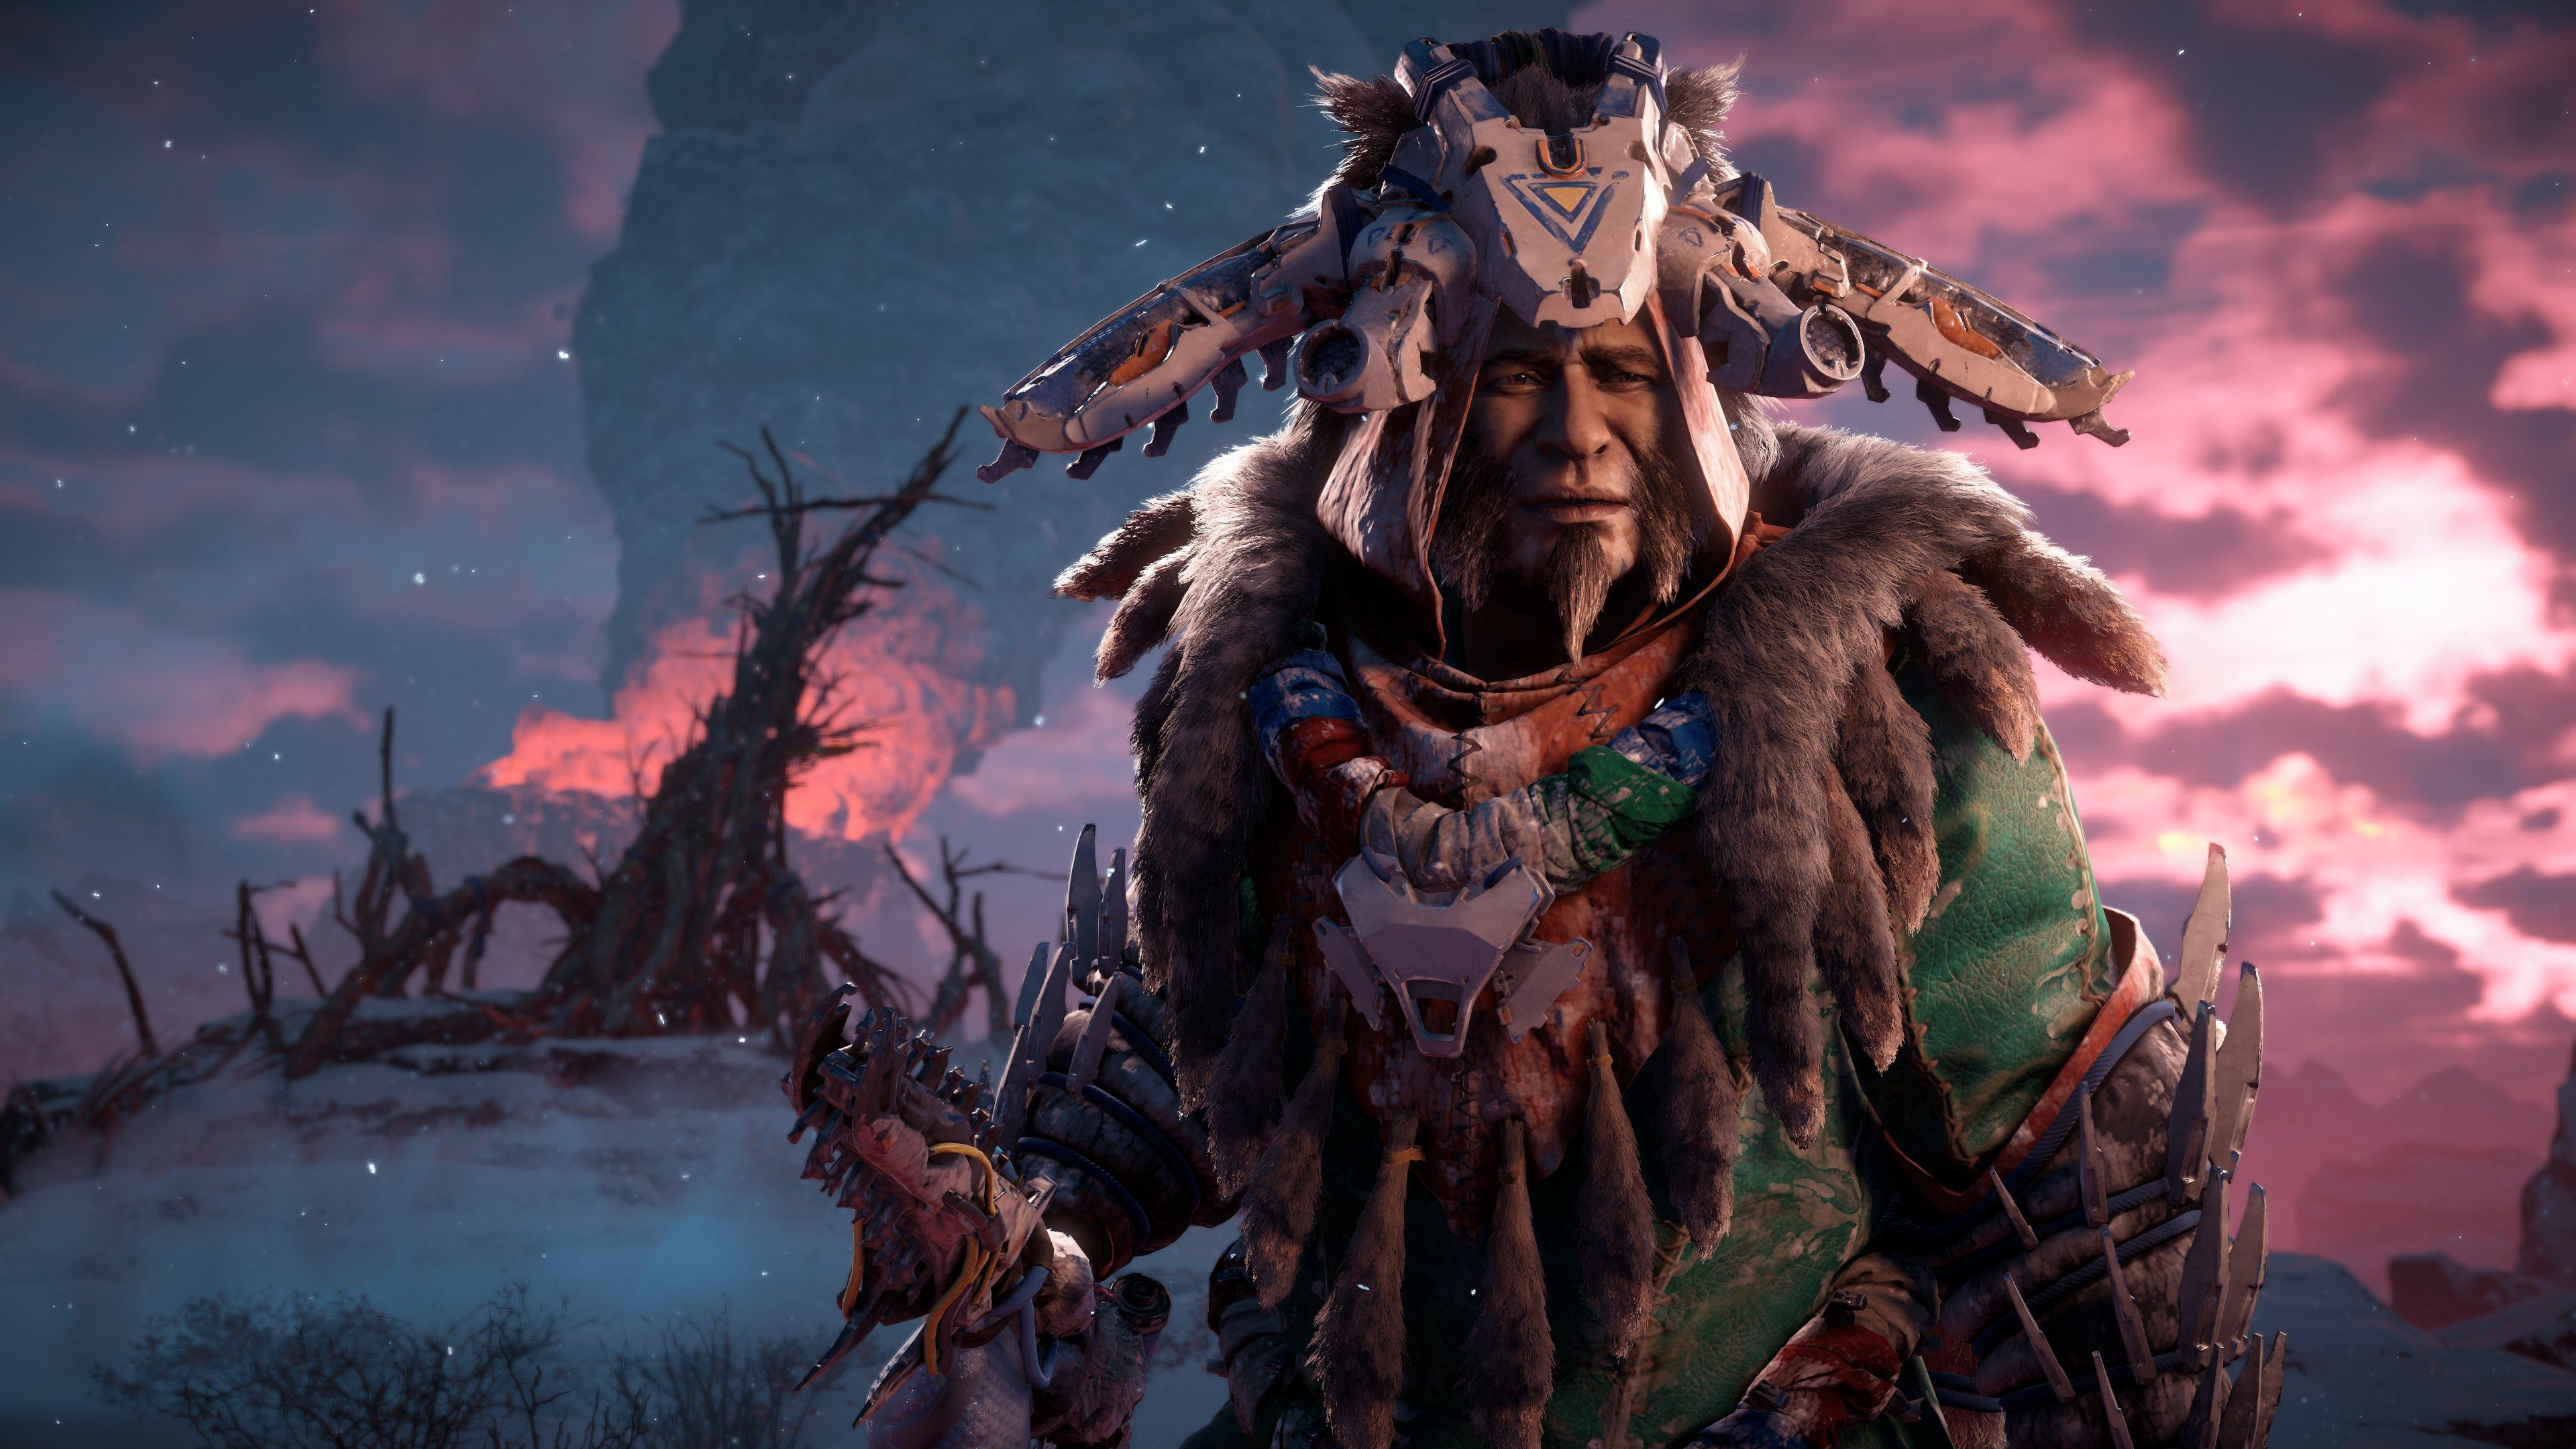 Zero Dawn 'The Frozen Wilds' s'offre une vidéo de gameplay — Horizon